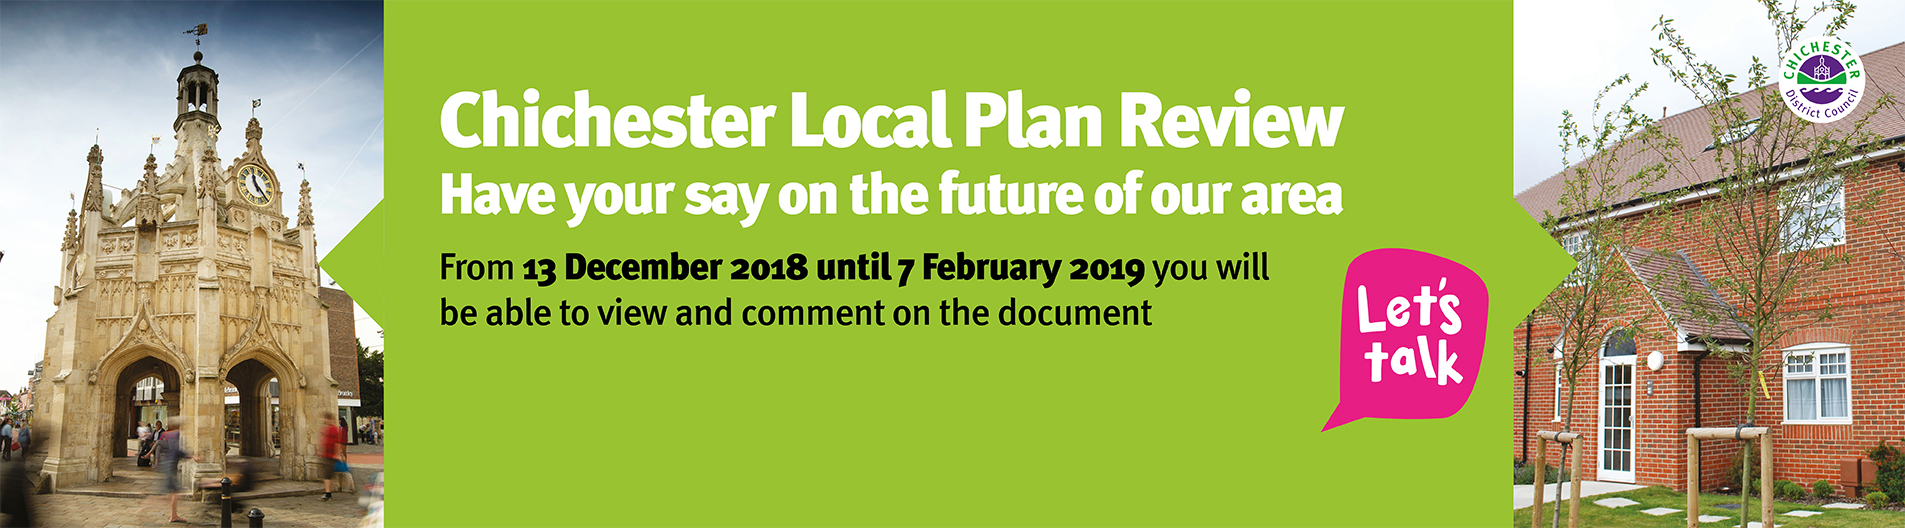 Chichester Local Plan Review 2035